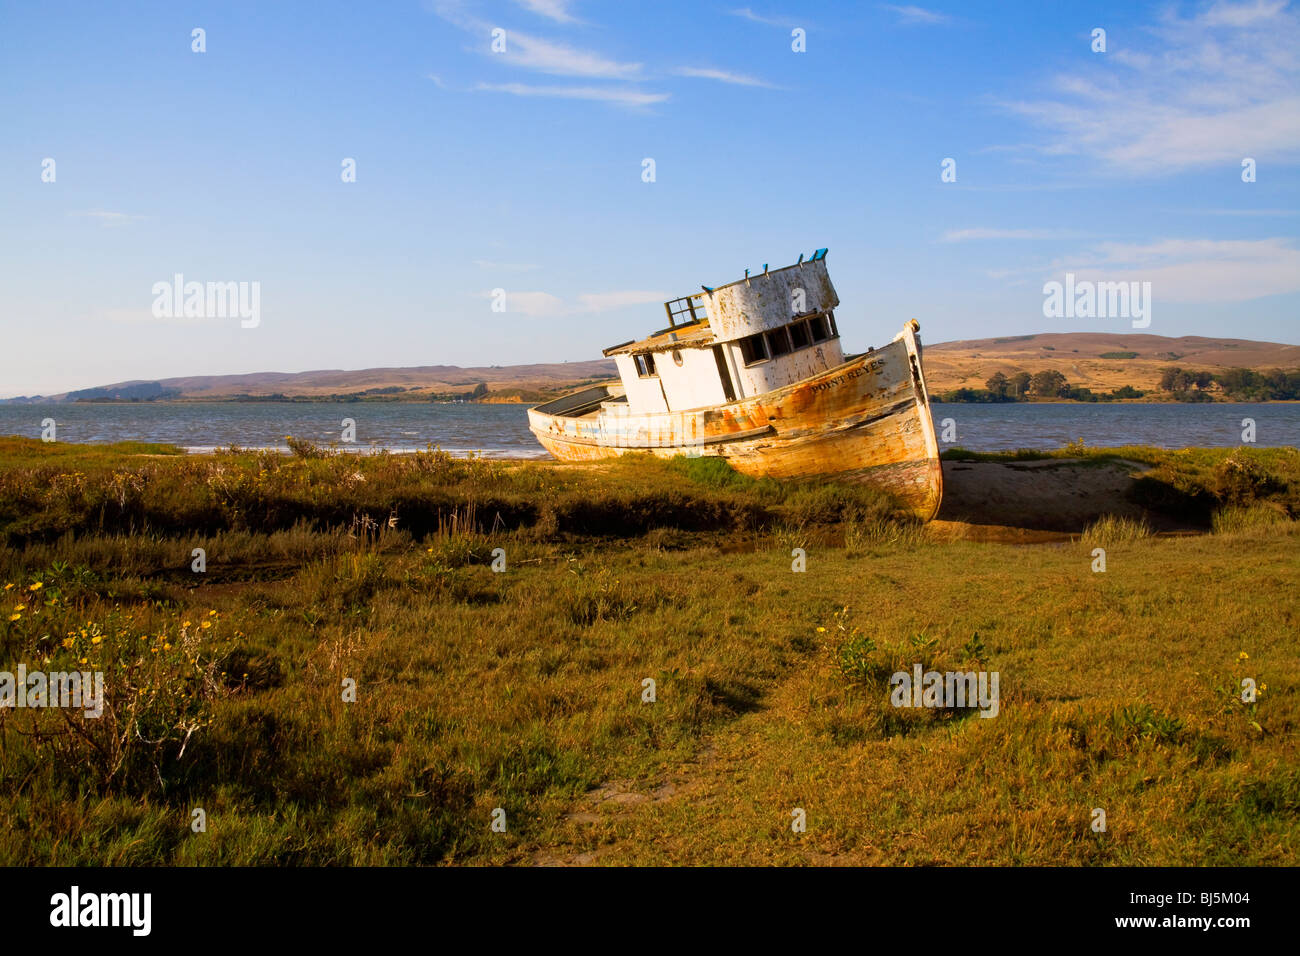 An old weathered boat at Point Reyes, California - Stock Image